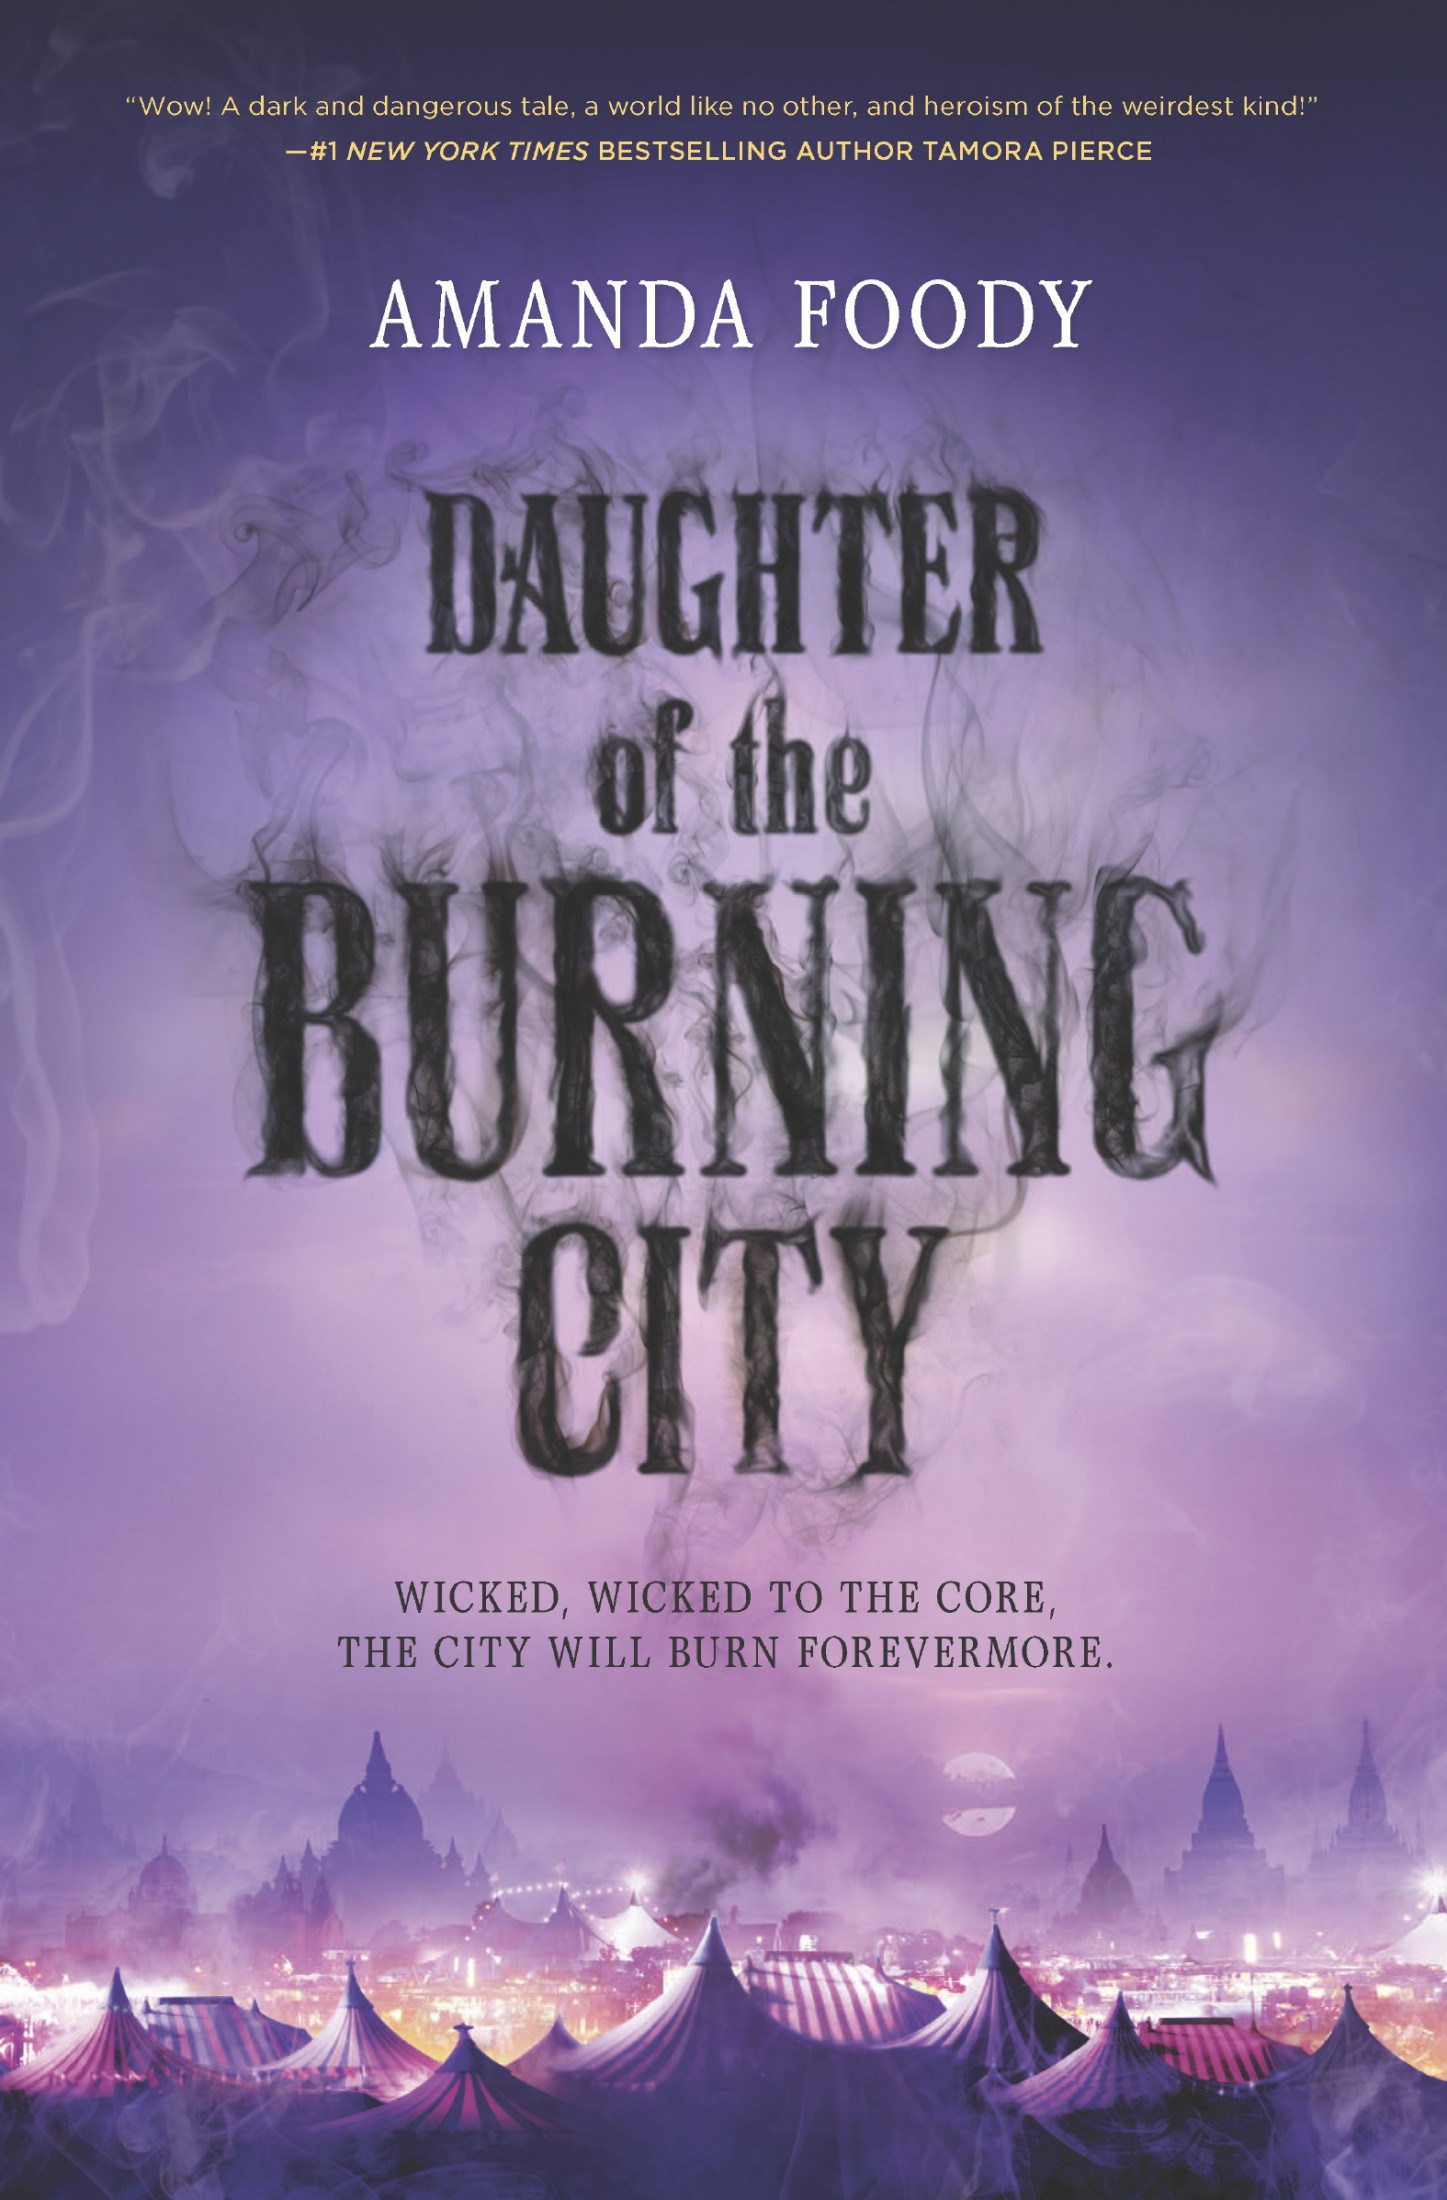 Daughter of the Burning City - Amanda Foody [kindle] [mobi]